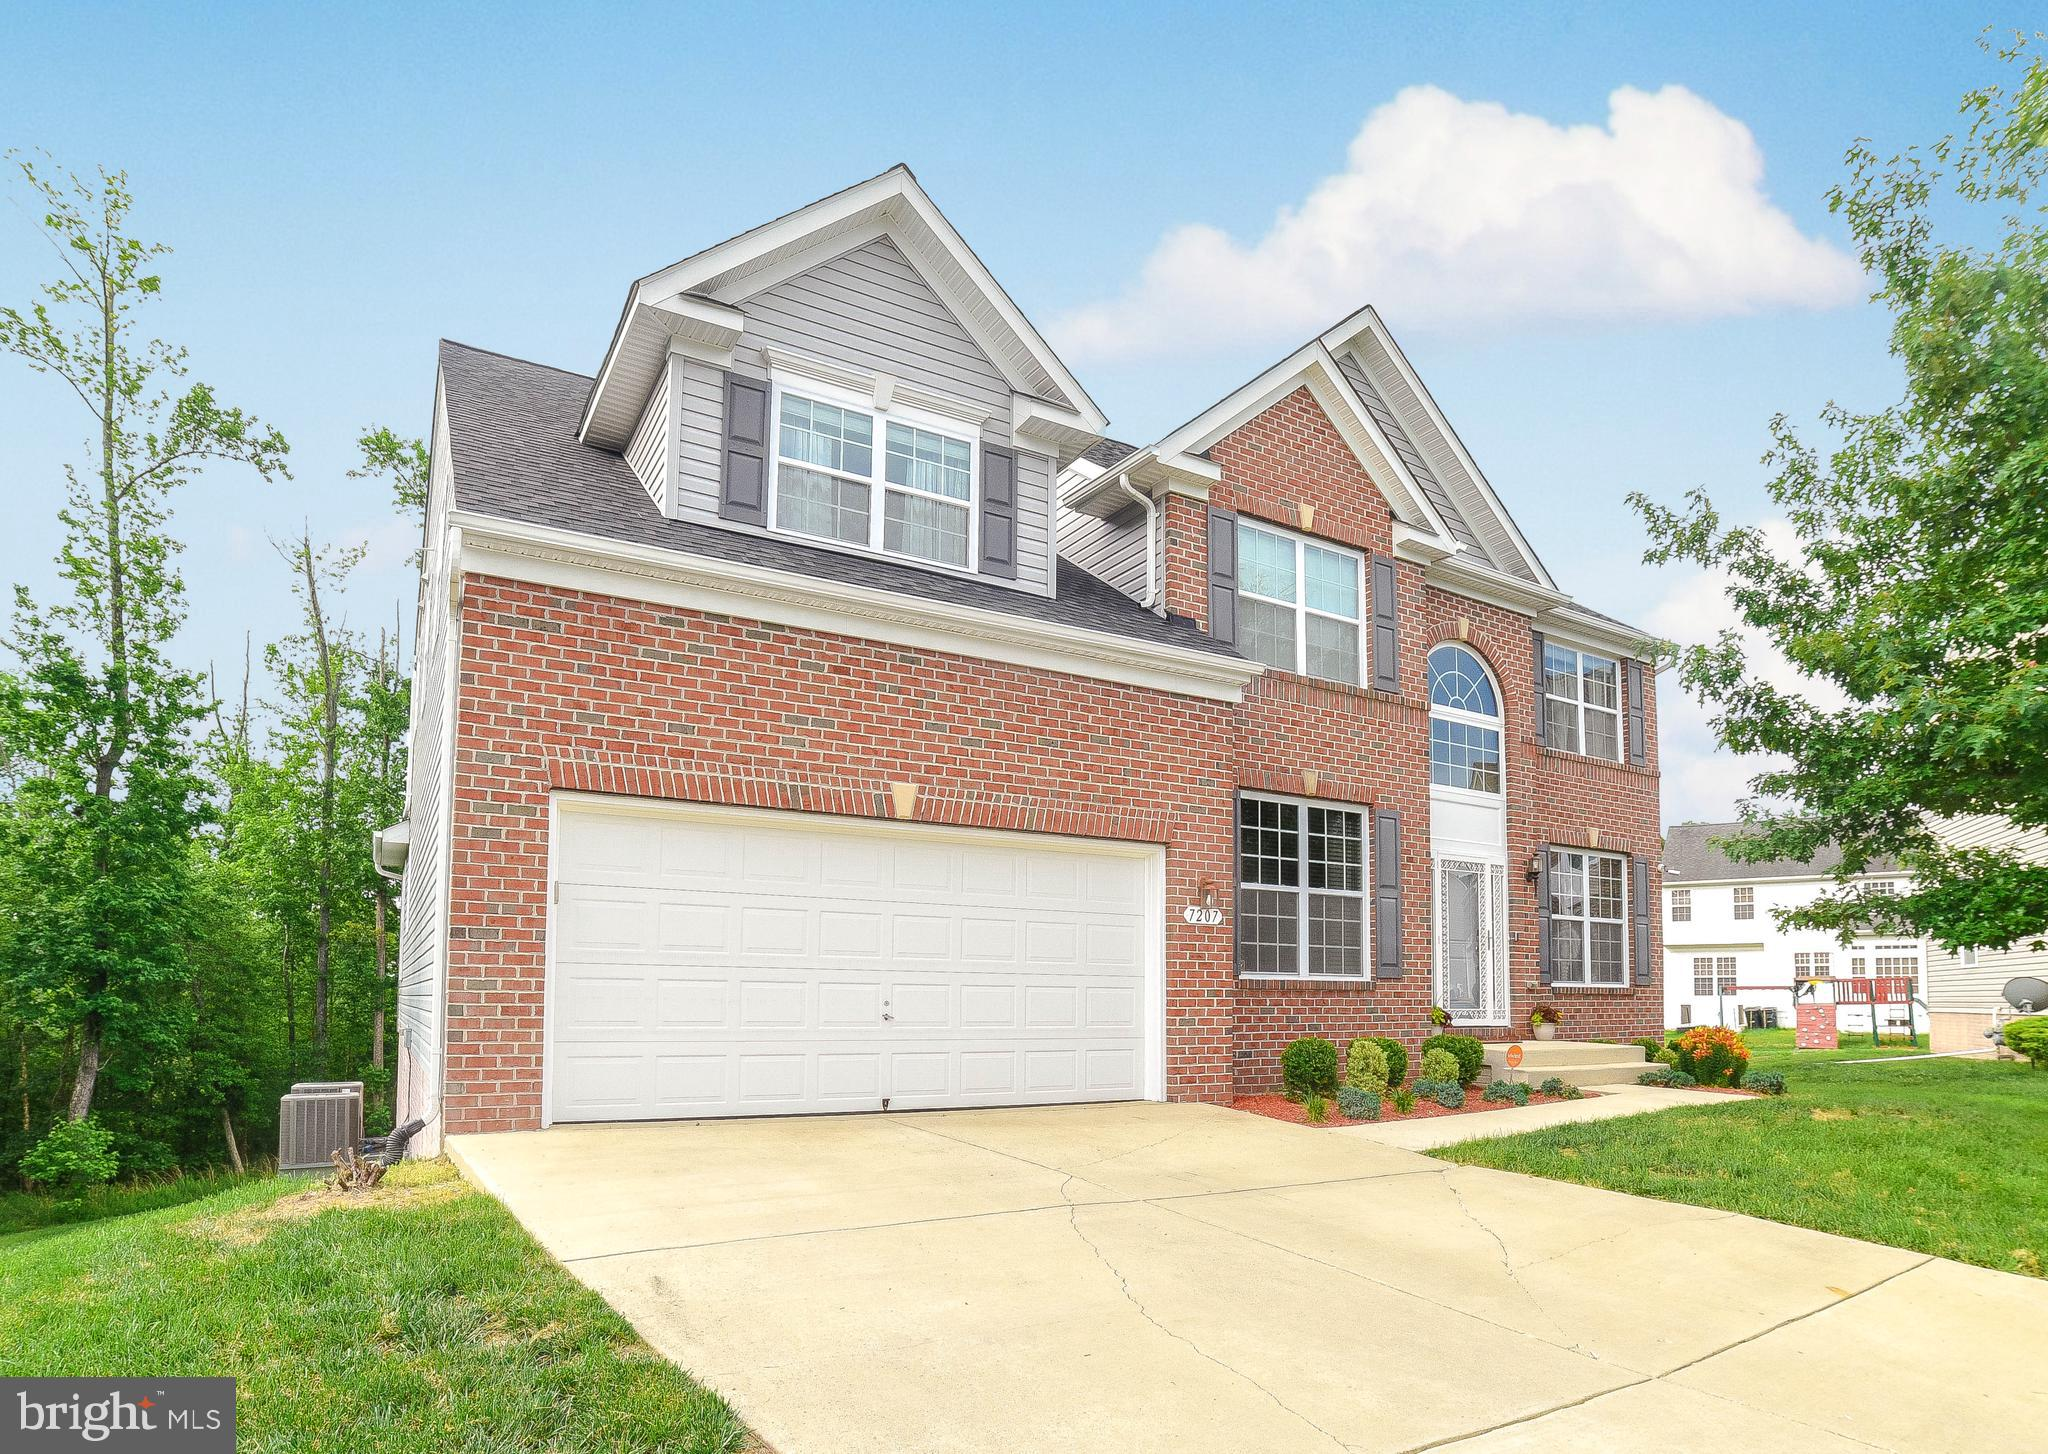 """***OFFER DEADLINE*** Monday June 14, 2021 at 3pm Everything you're looking for in a home!!! Gorgeous single family home, model like home less than 10 years young, 5 bedrooms, 3.5 baths, 3 stories / 4,800 sq ft MOVE IN READY!! Kitchen perfect for hosting w/island, range top stove and double wall ovens. Spacious sun room leads to new deck. Private office w/dual desk & built-ins. Family Rm, formal dining, living Rm, owners suite w/adjacent custom walk-in closet. You will absolutely love the fully finished, spacious basement w/hardwood floors.  Includes projector, 120"""" screen and 6 in ceiling surround sound speakers, bedroom w/walk-in closet, full bath & exercise room. Leads to big back yard / below deck patio. ROOF, DECK & PATIO less than 2 years old. HARDWOOD throughout, except bedrooms and bathrooms. Basement is very spacious with open style recreation room perfect for entertaining or relaxing, exercise room and plenty of storage.  ***OFFER DEADLINE*** Monday June 14, 2021 at 3pm"""